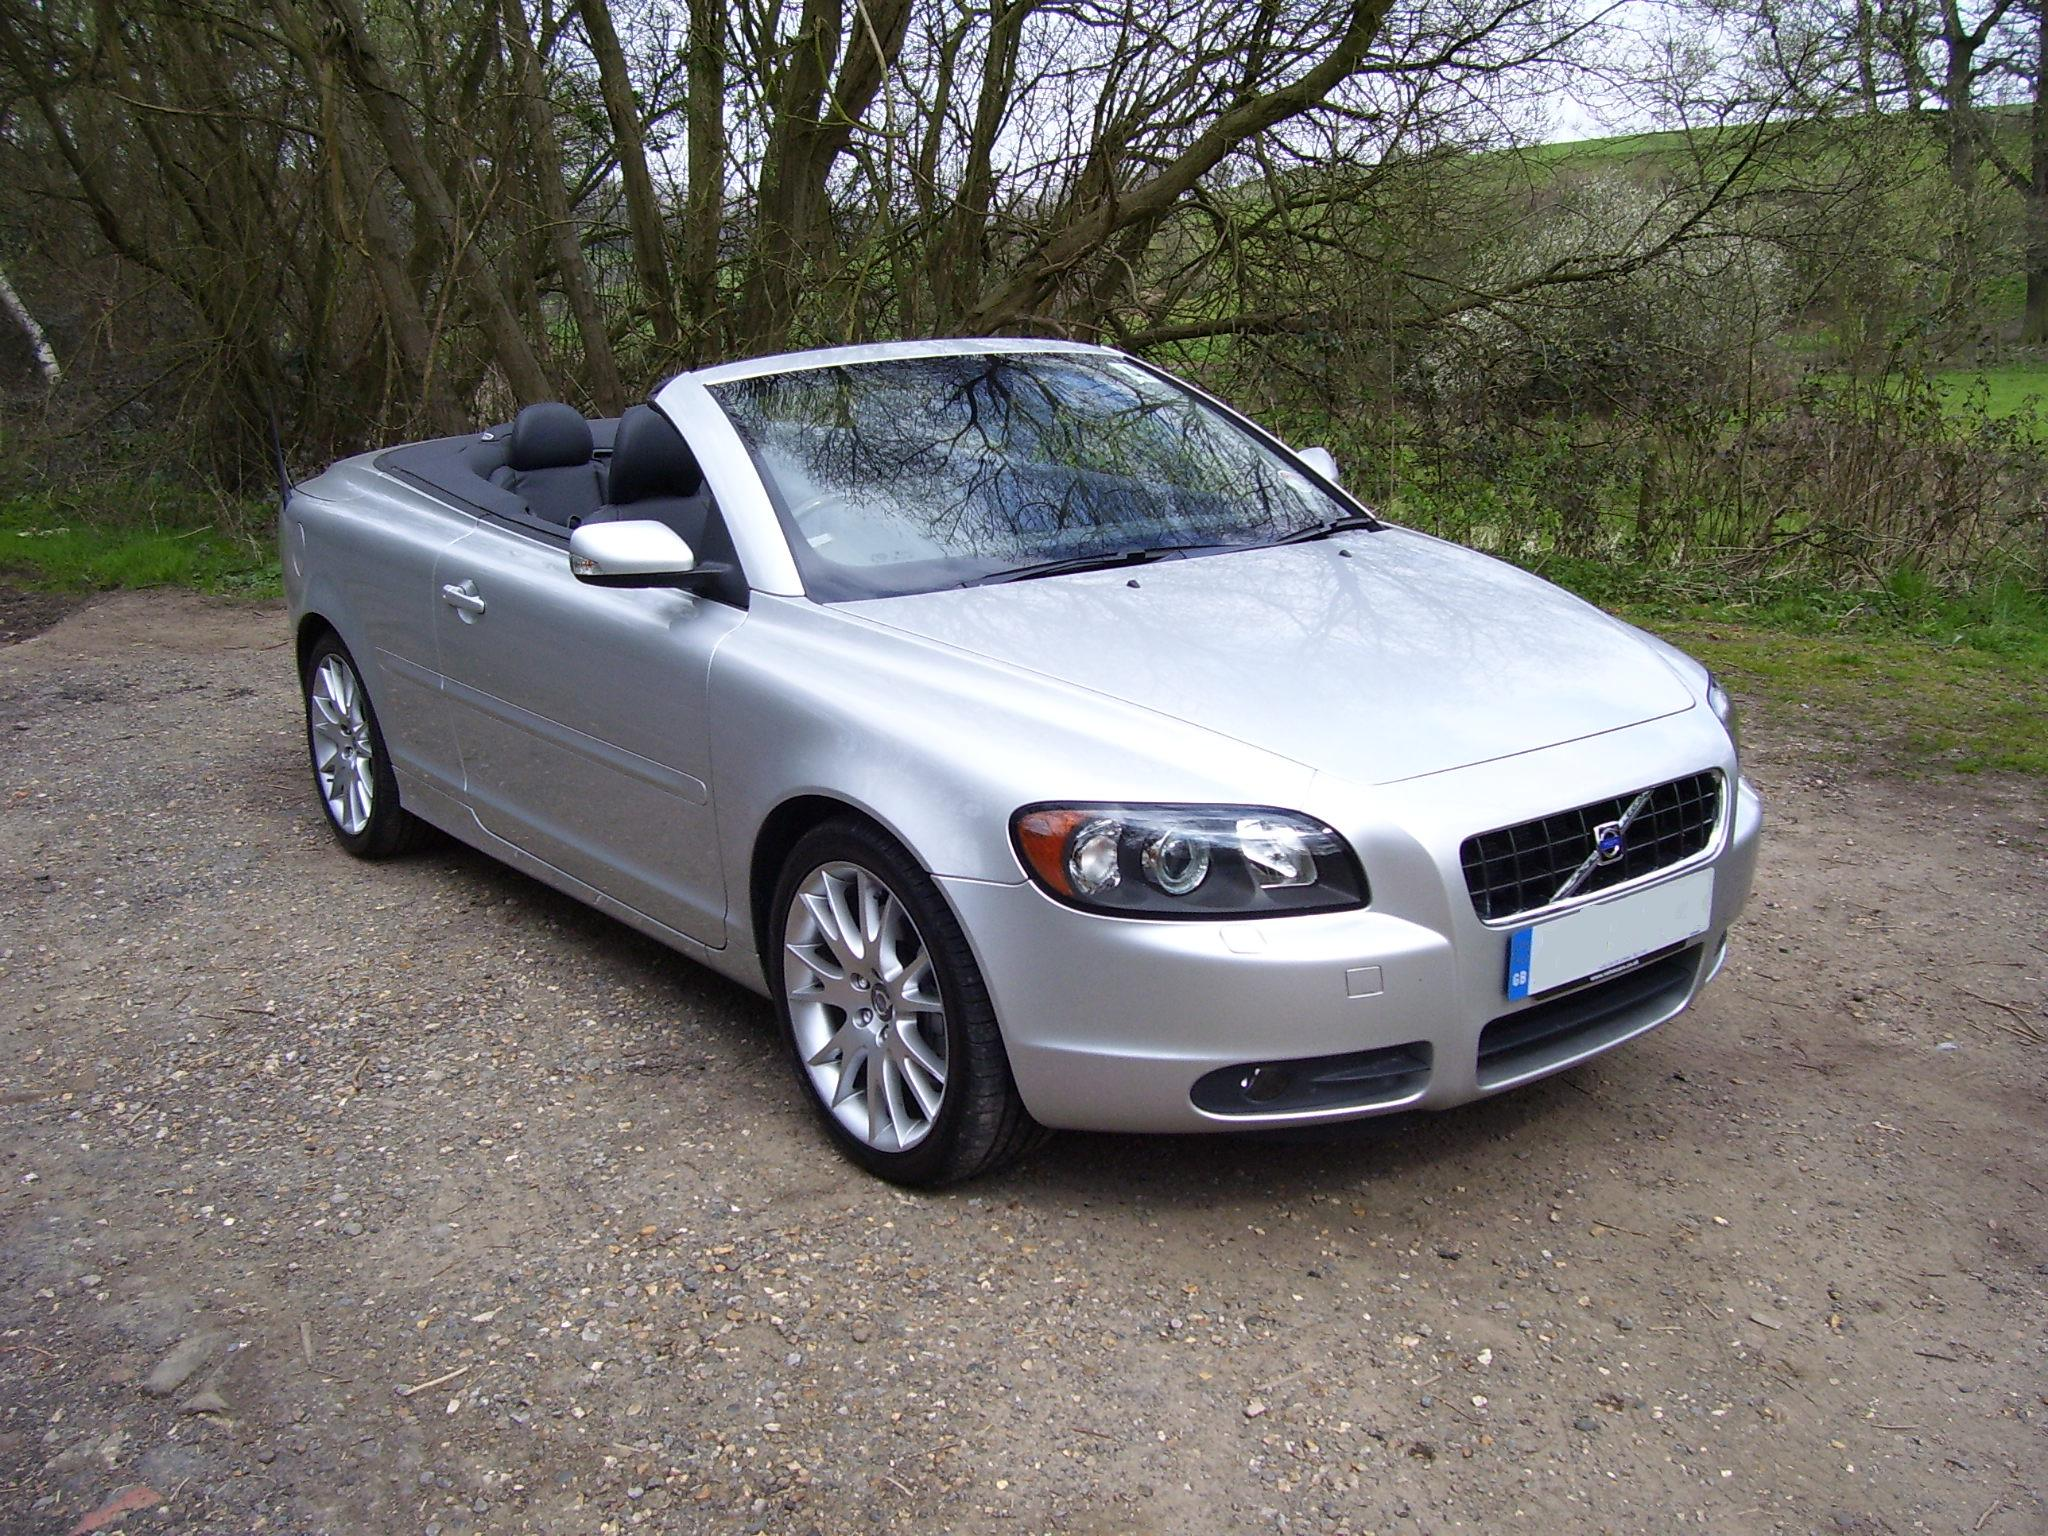 volvo c70 wikipedia rh en wikipedia org 2008 volvo c70 t5 convertible owners manual 2007 volvo c70 manual transmission